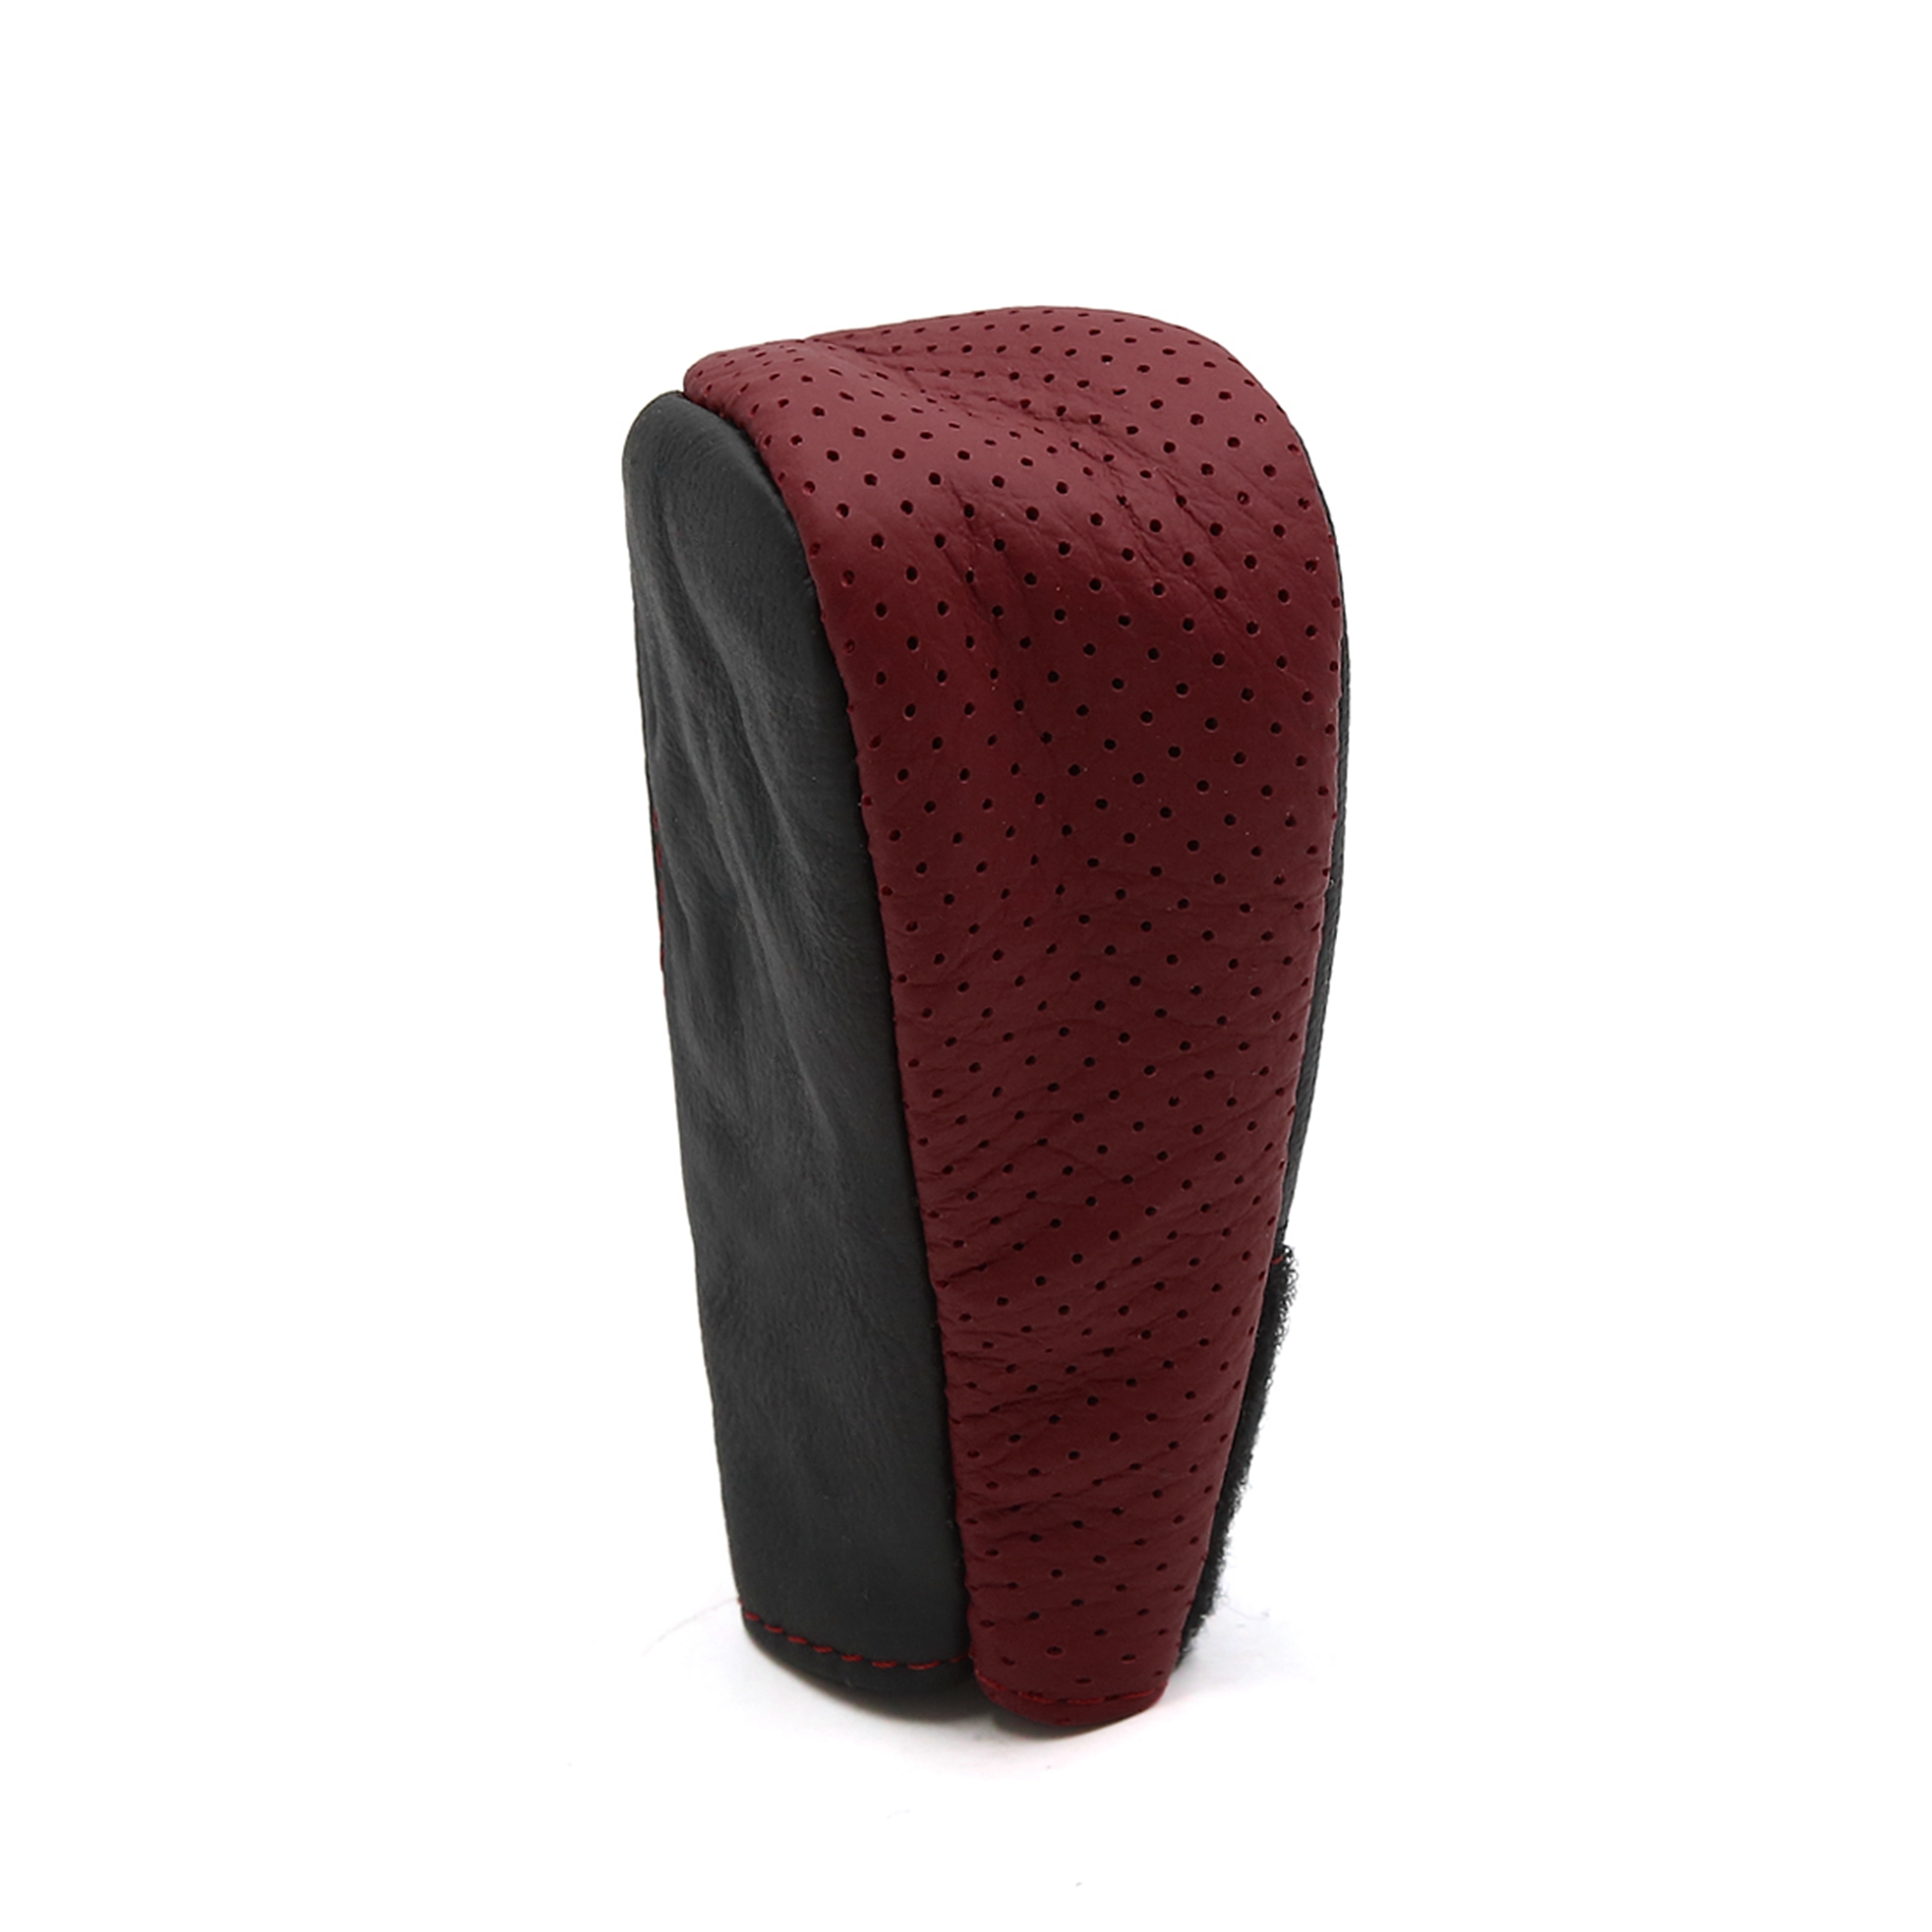 Faux Leather Hoop Loop Closure Car Gear Shift Knob Shifter Cover Protector Red